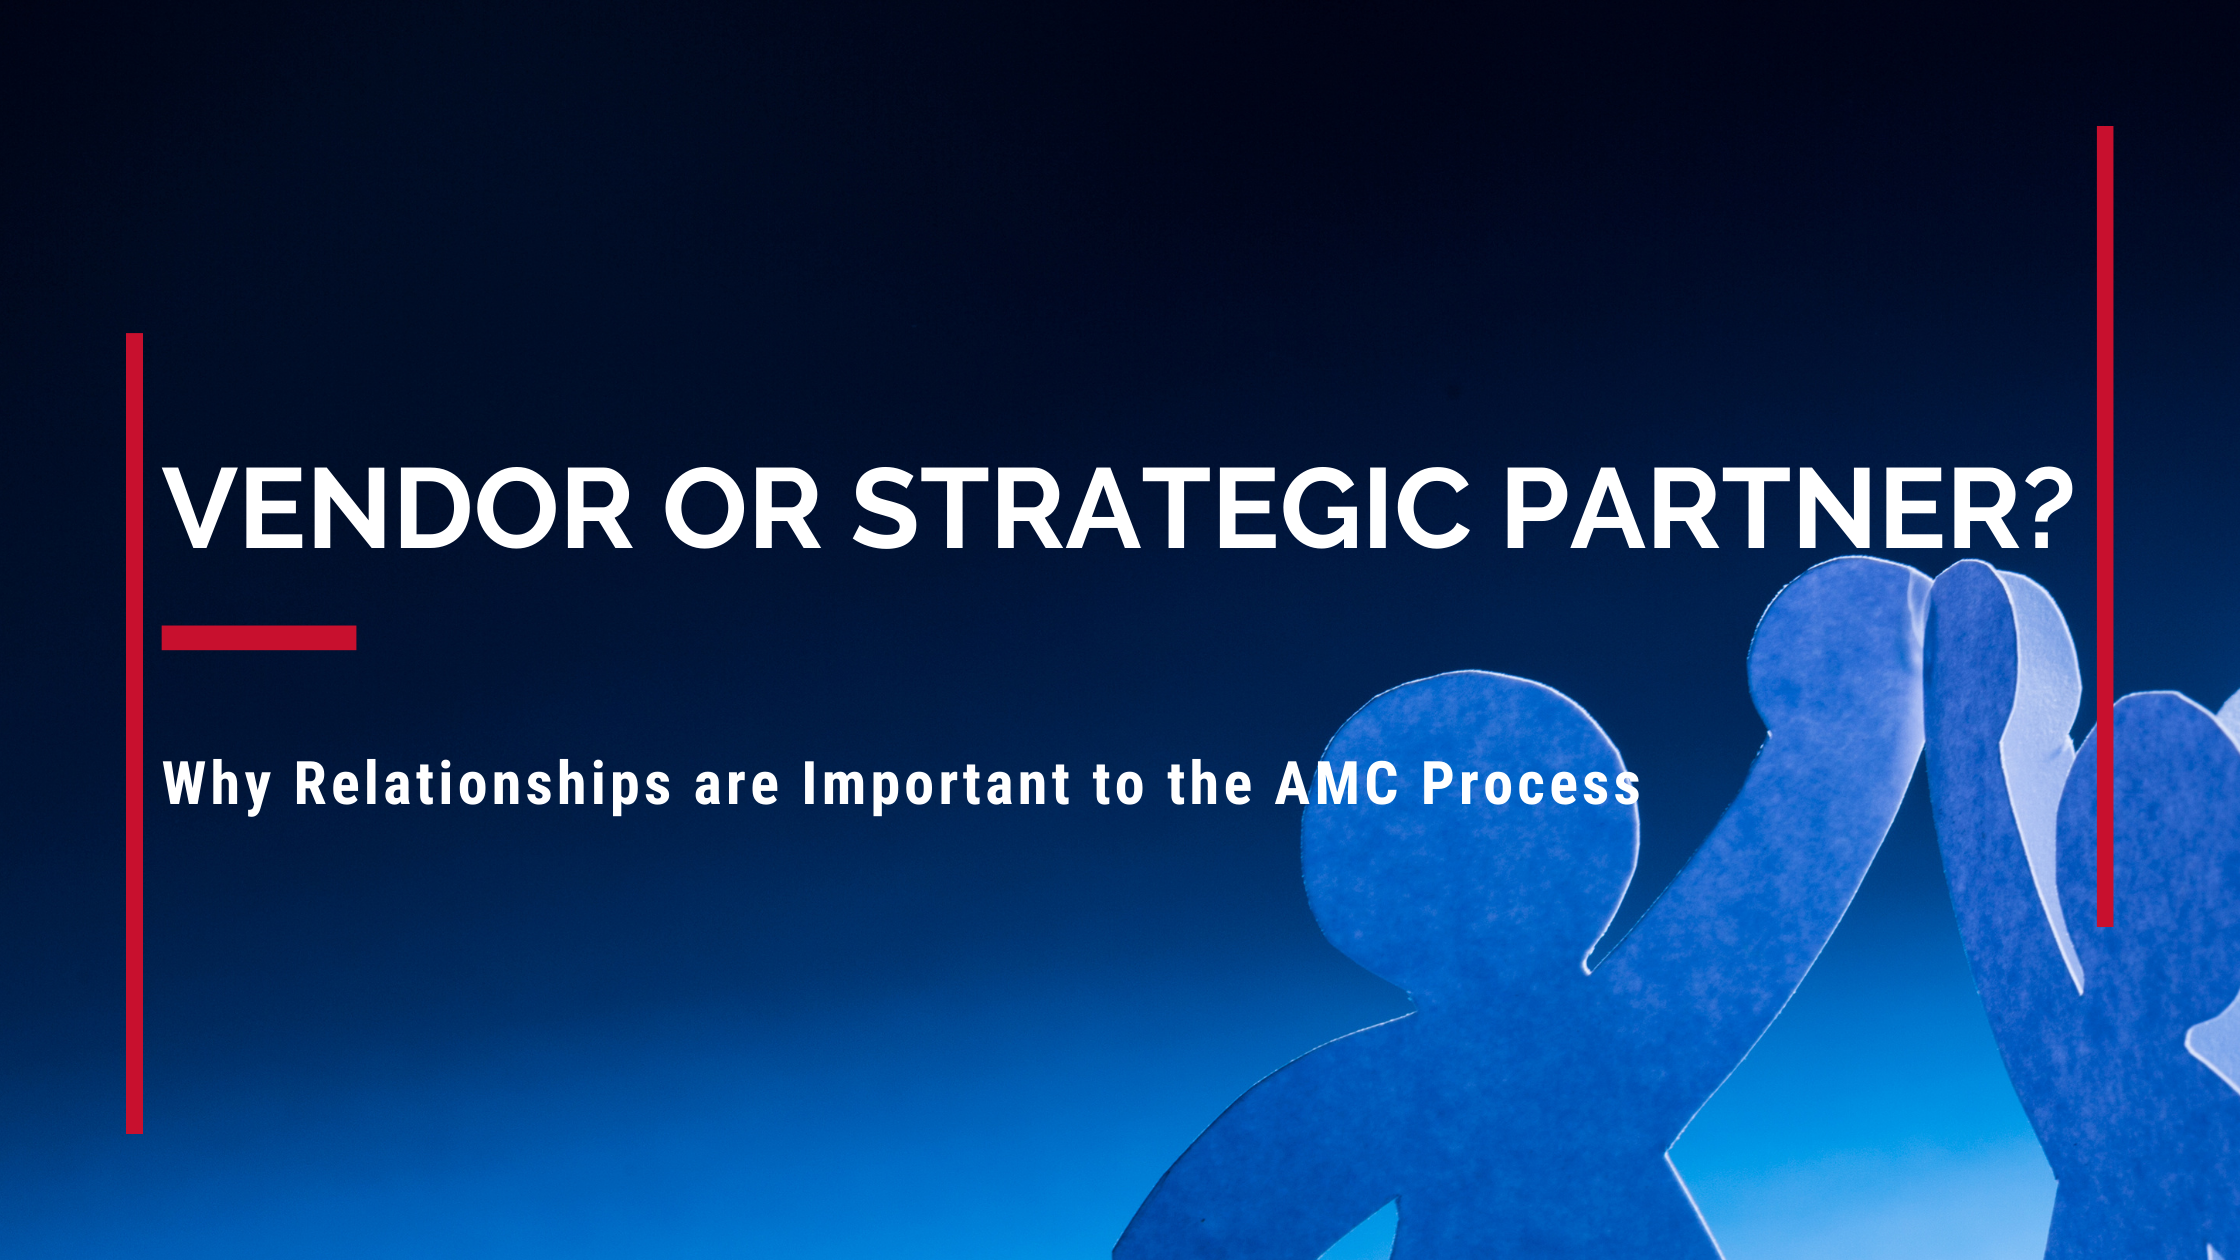 Why Relationships are Important to the AMC Process